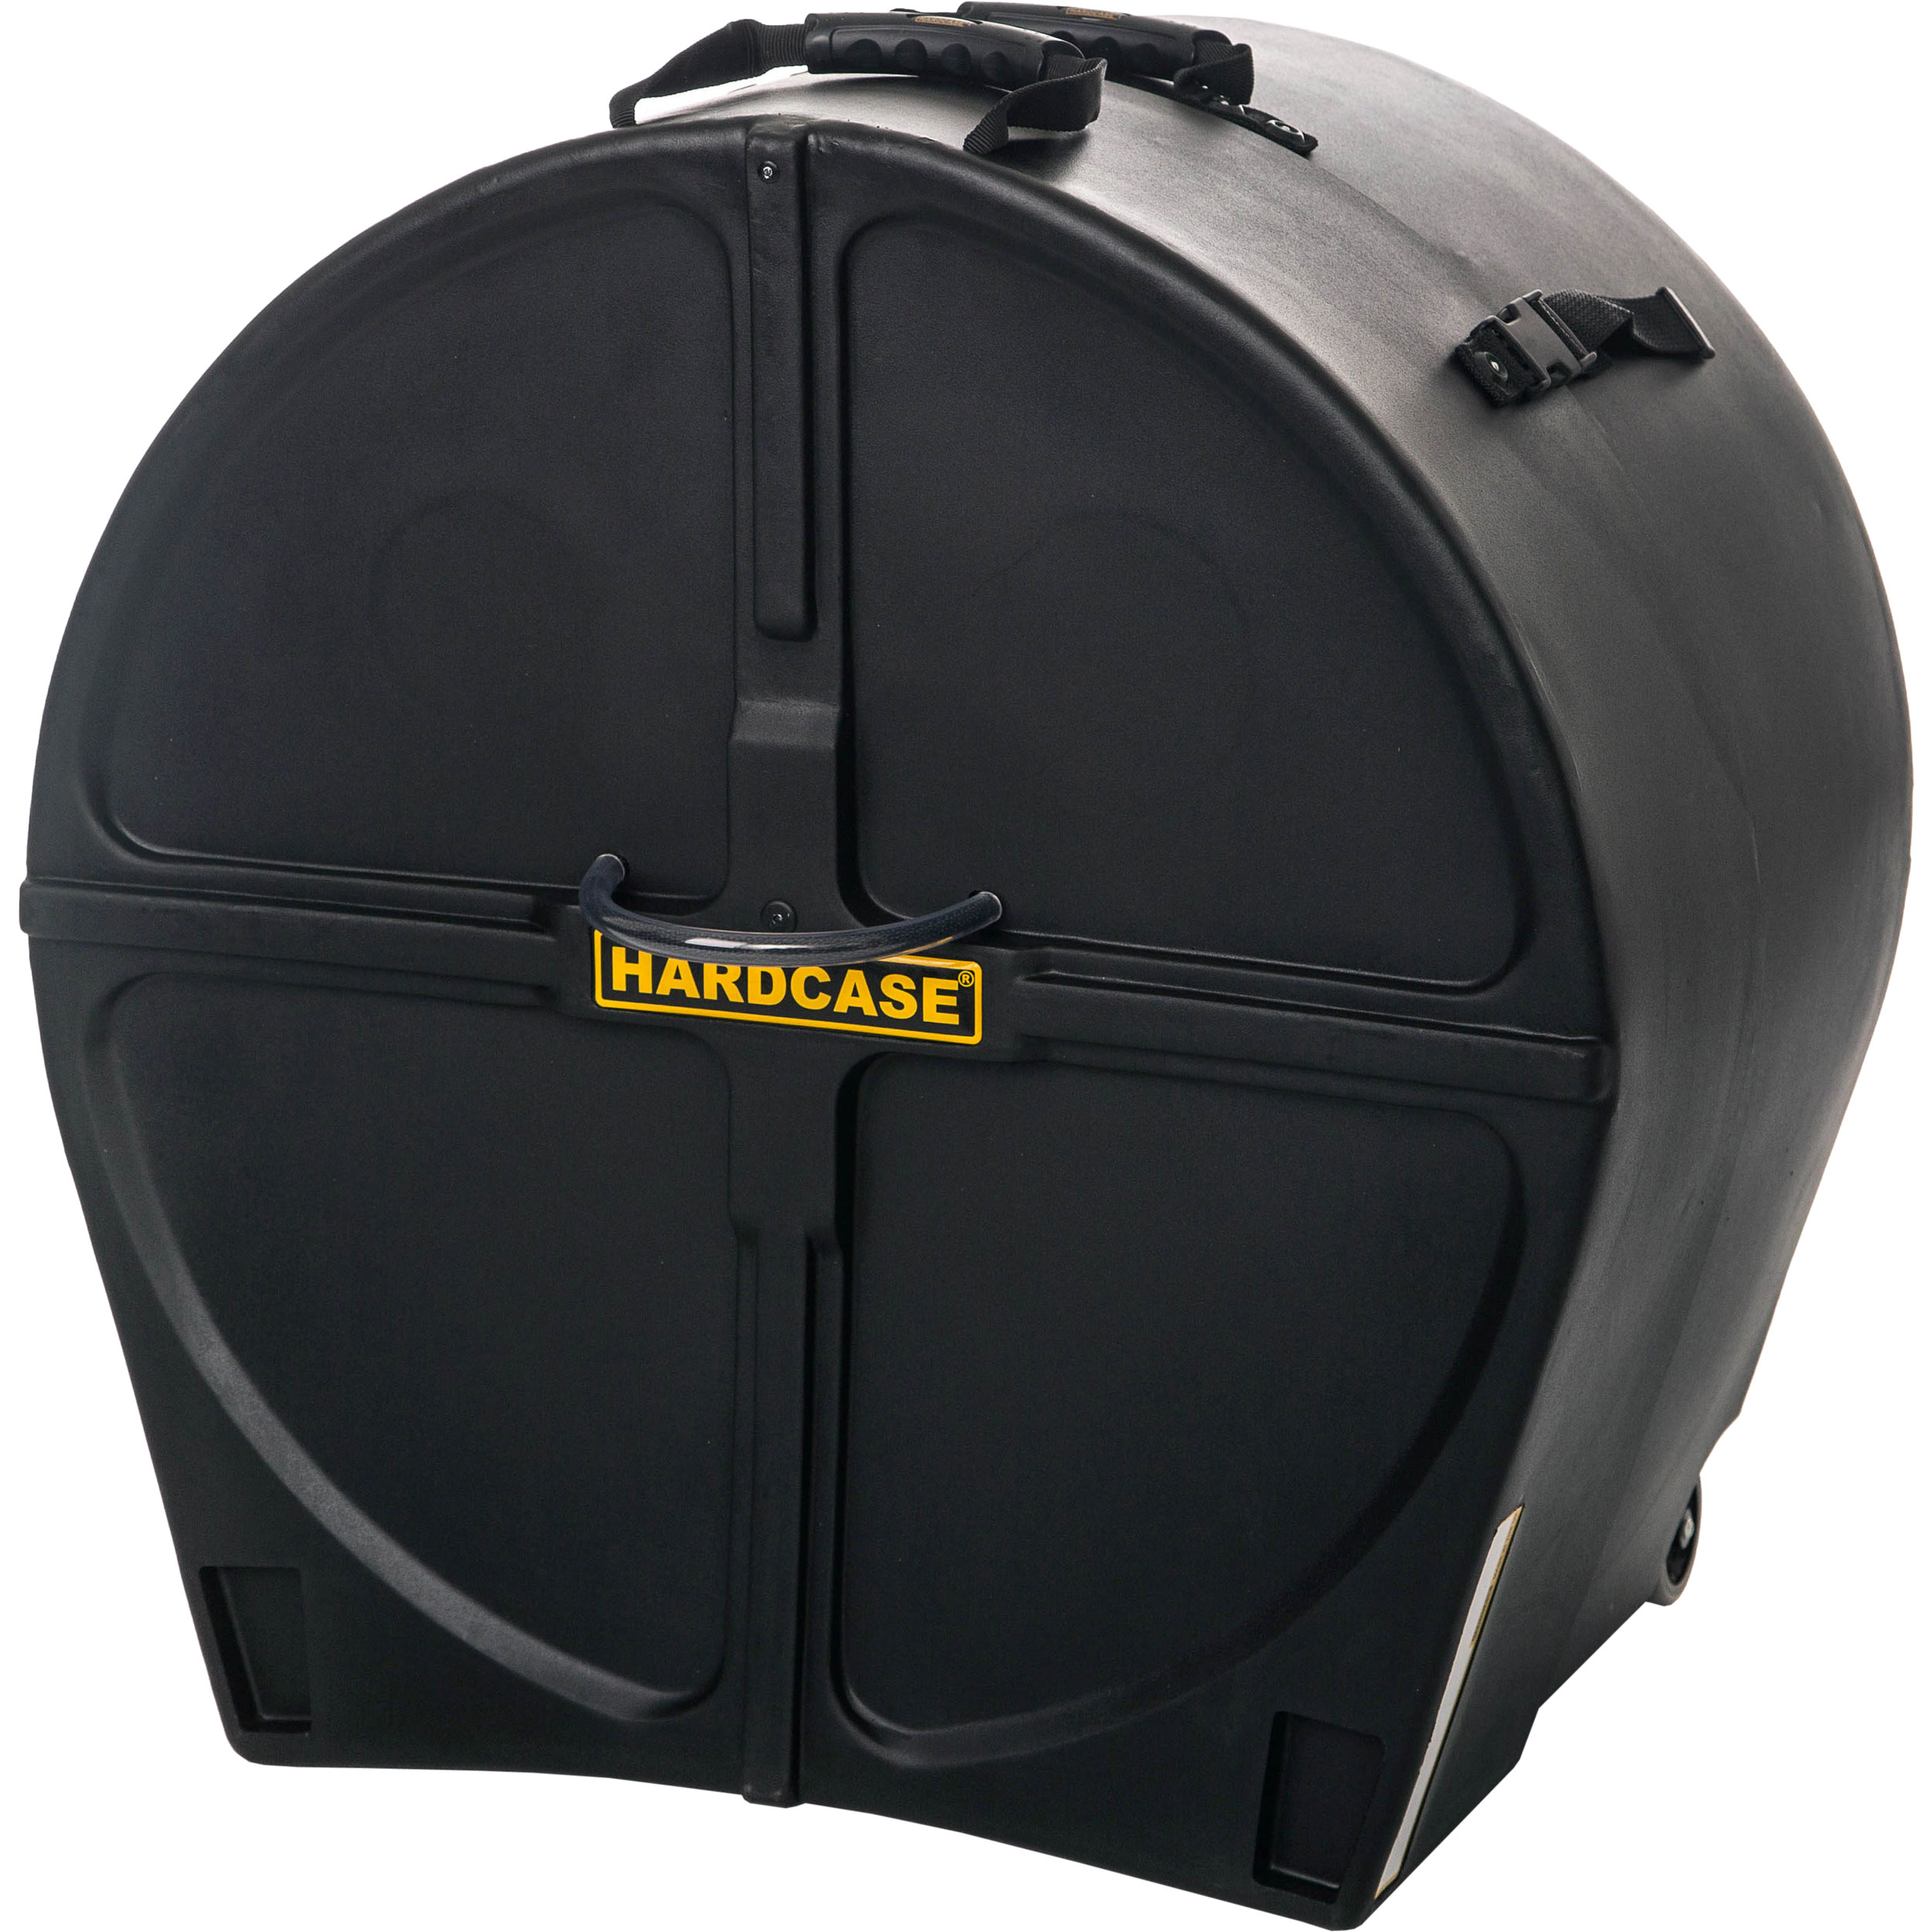 "Hardcase 22"" (Diameter) x 16-to-20"" (Deep) Bass Drum Case with Wheels"